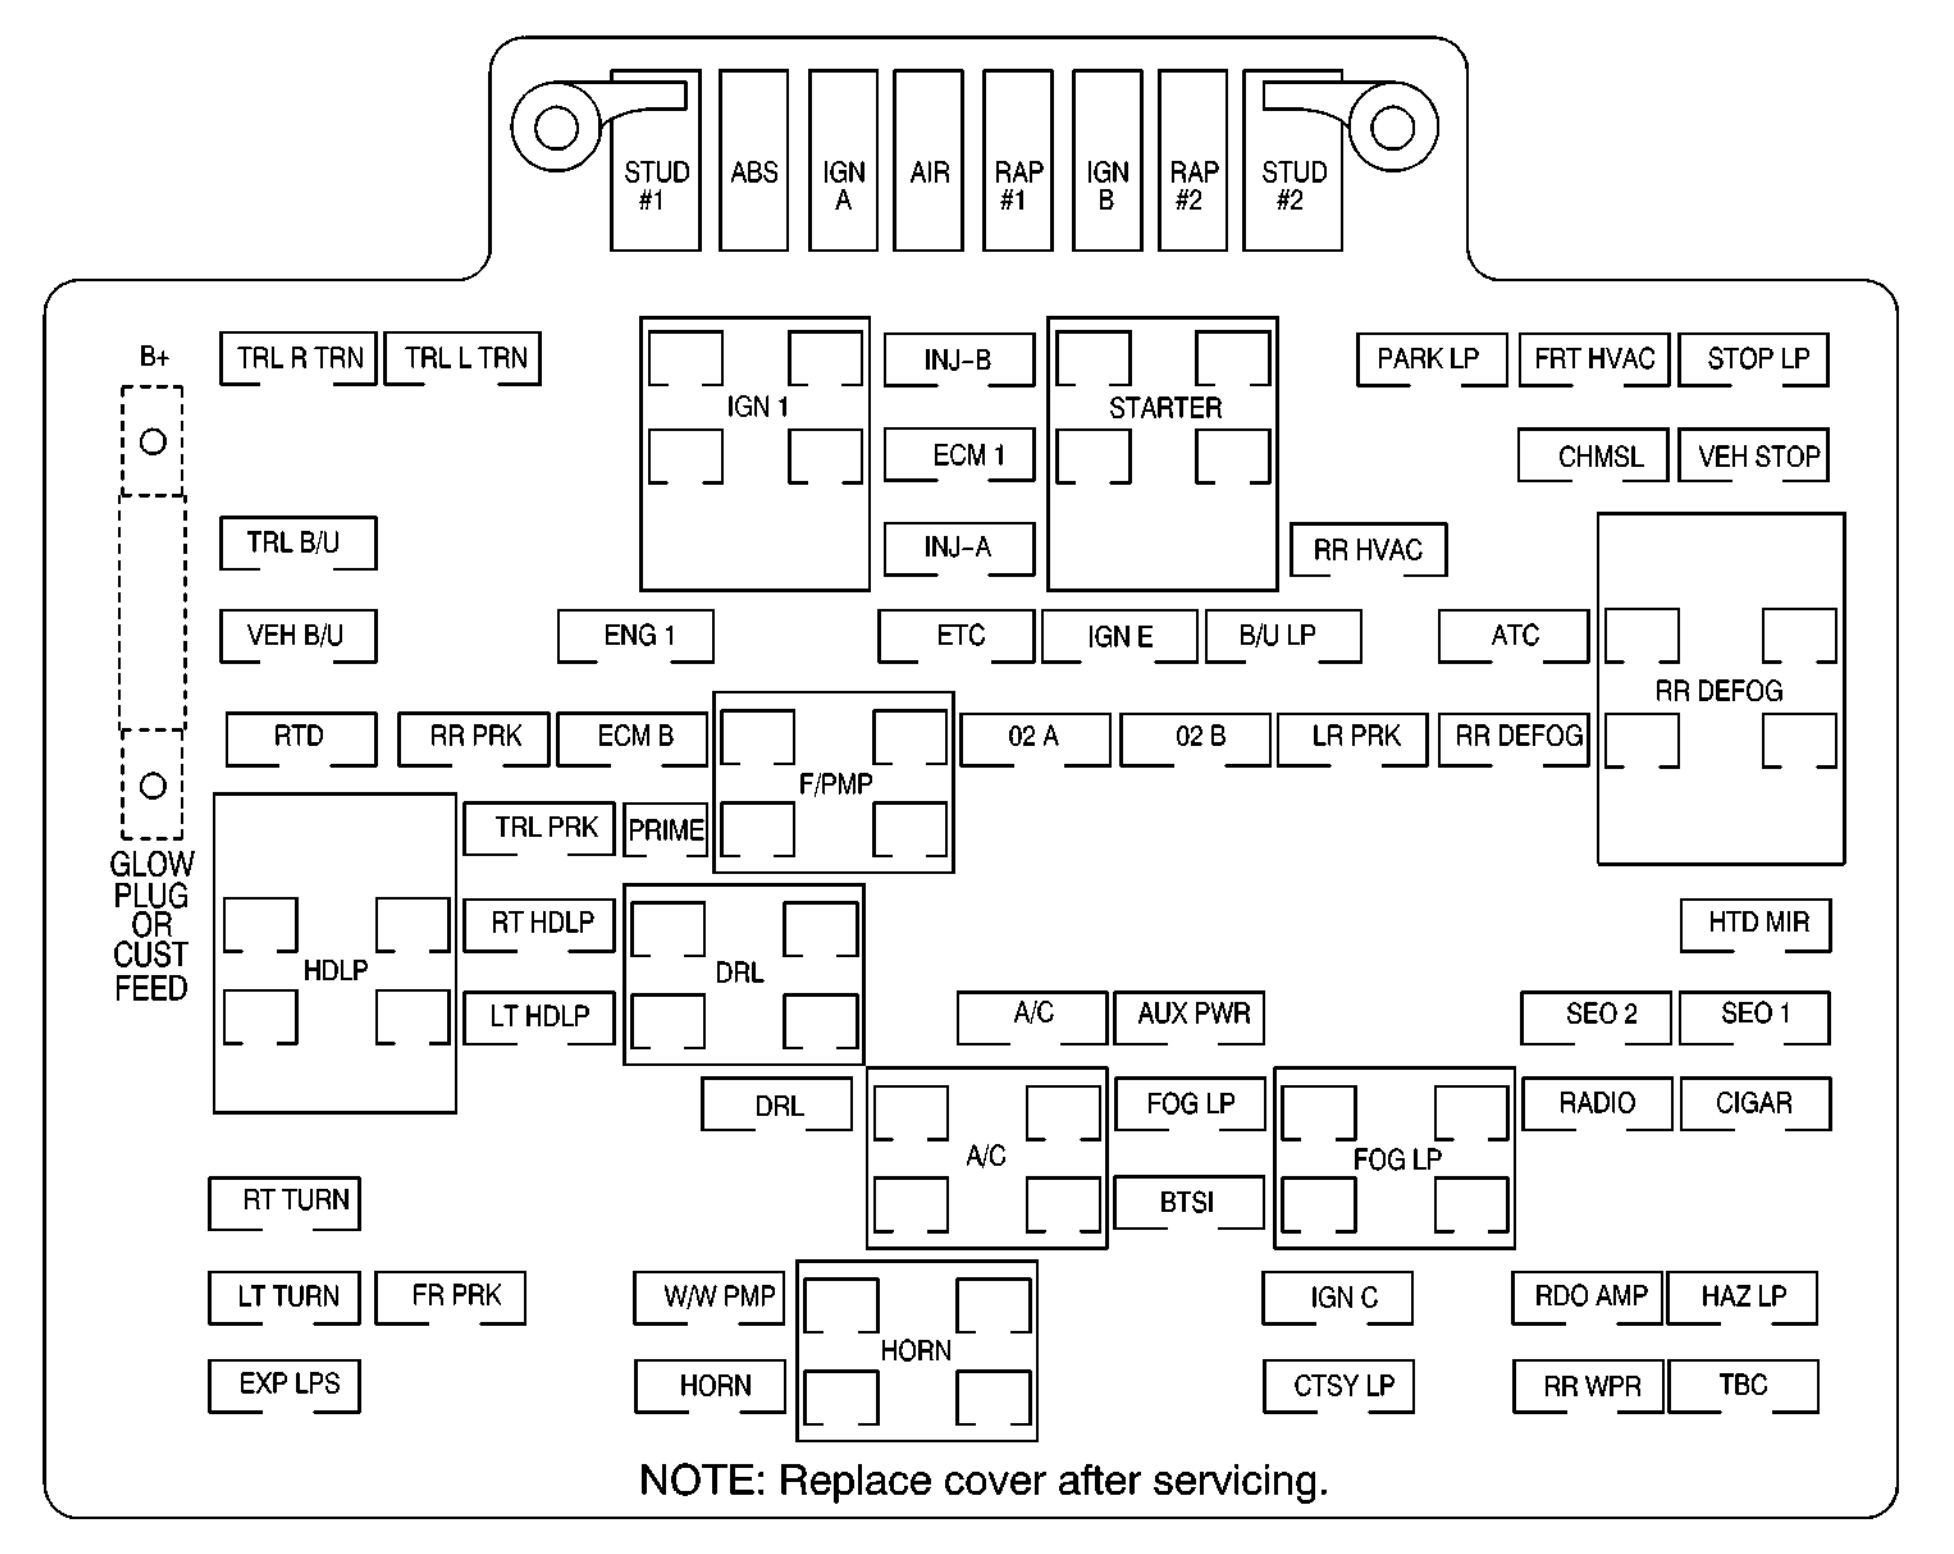 Fuse Box Diagram 1999 Chevy Tahoe Enthusiast Wiring Diagrams Malibu 2008 Interior 2006